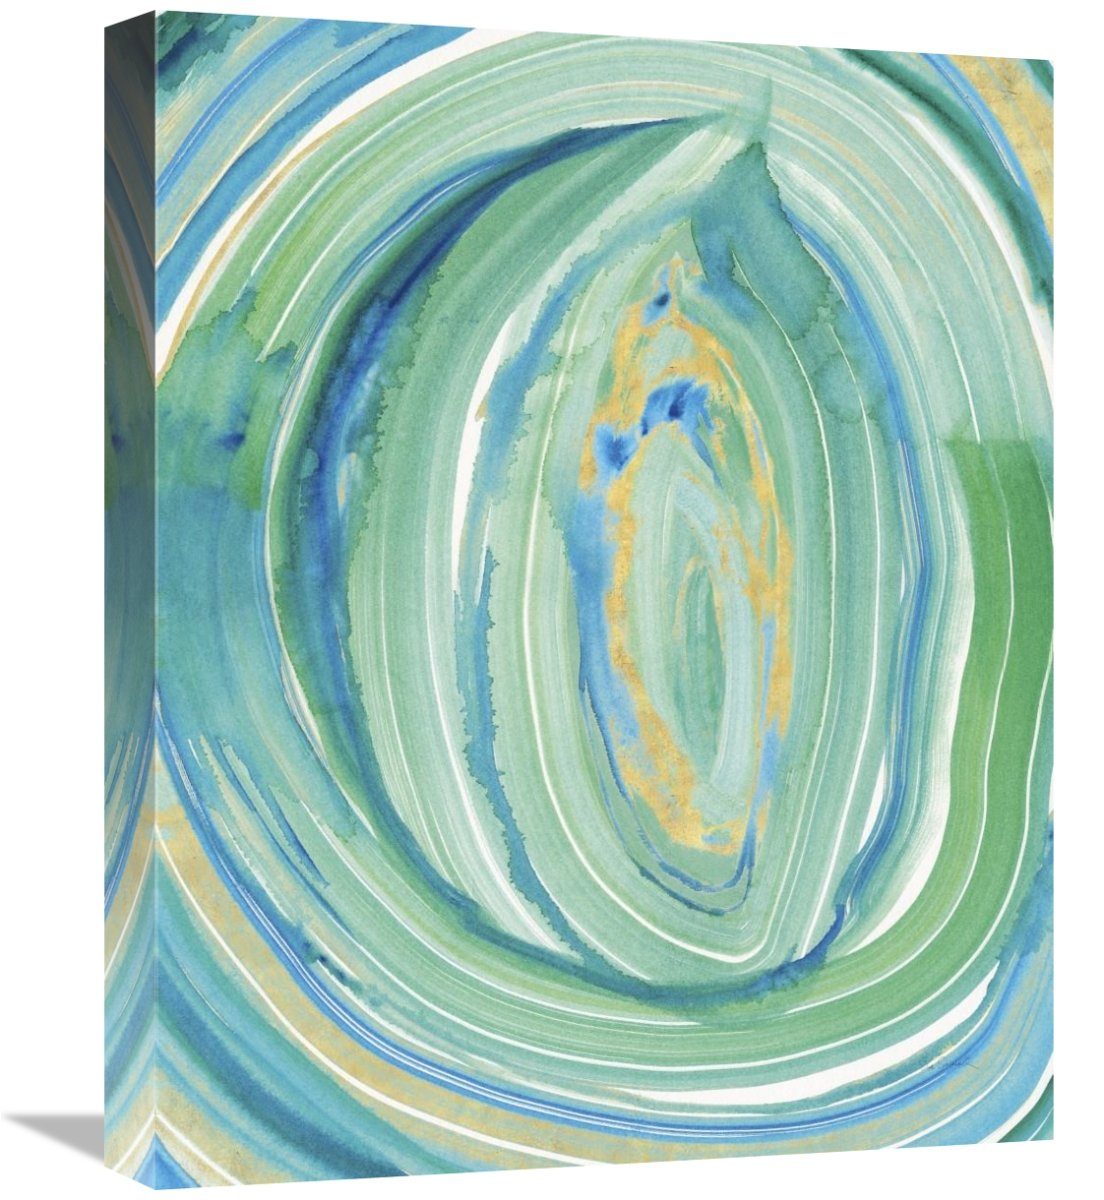 Global Gallery Sue Schlabach Giclee Stretched Canvas Artwork 16 x 20